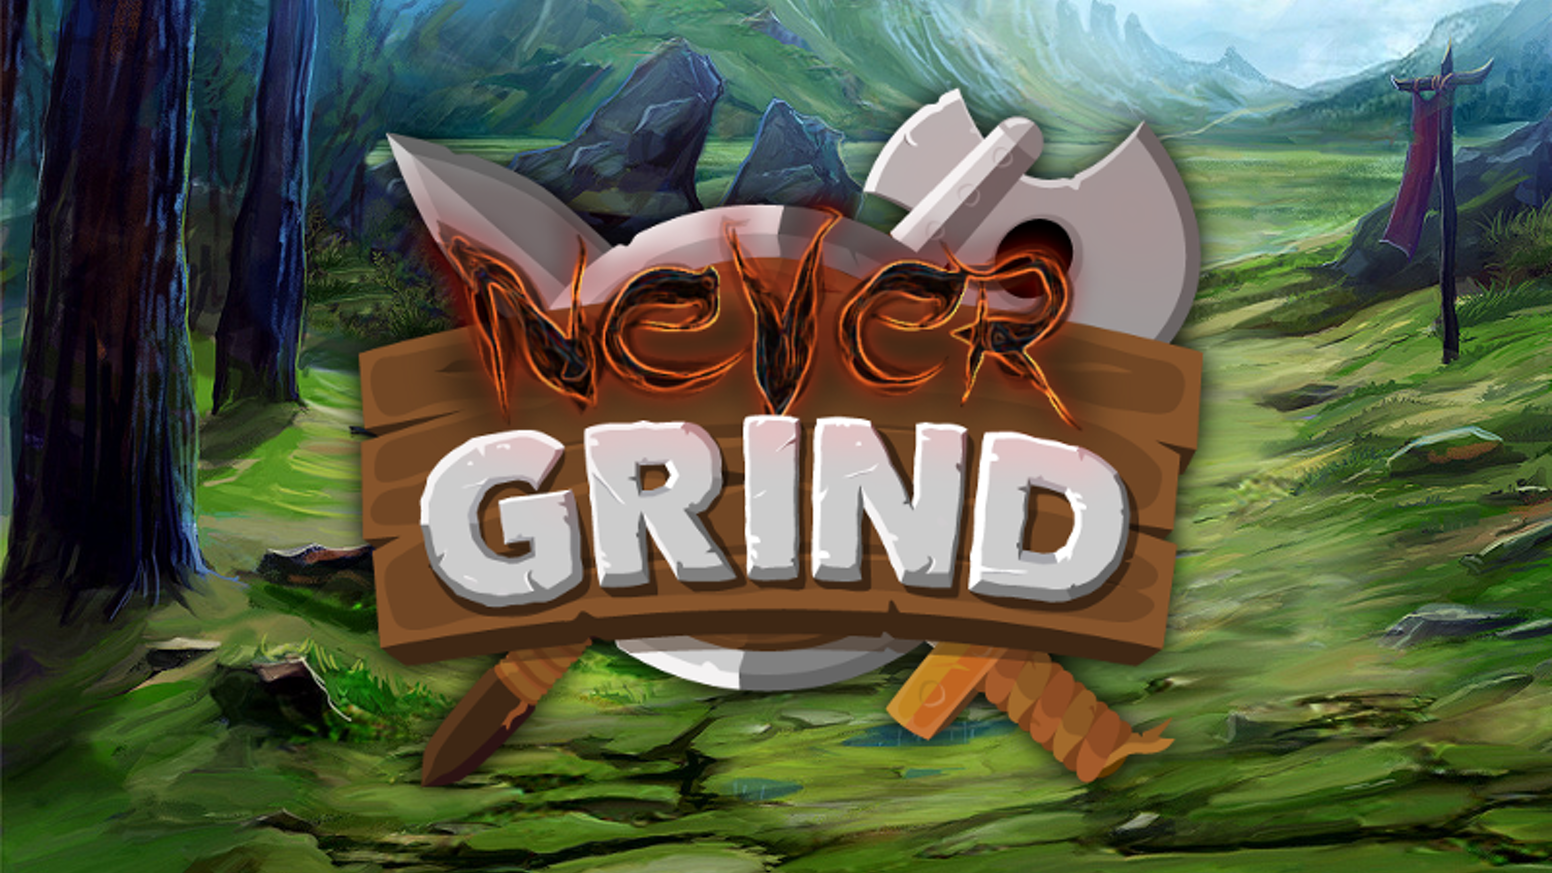 Nevergrind is an indie browser RPG where you battle Nalatos and his minions in a struggle to restore peace and prosperity to Vandamor.